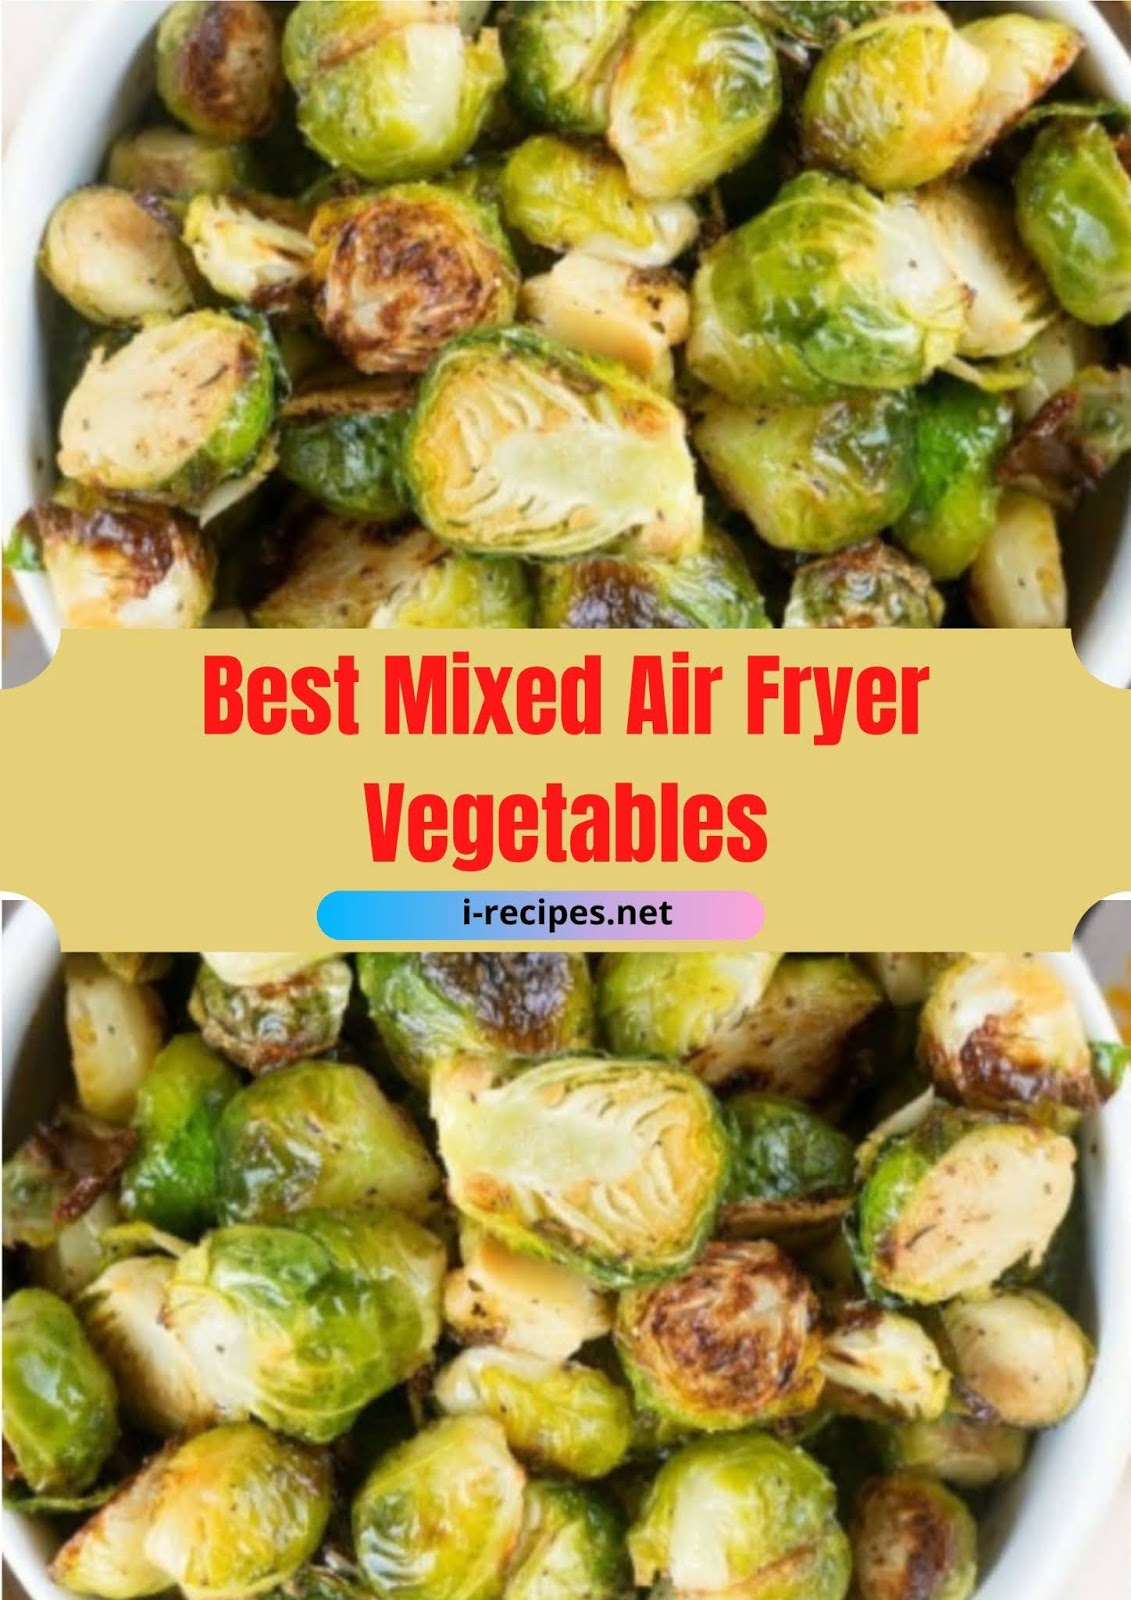 Best Mixed Air Fryer Vegetables